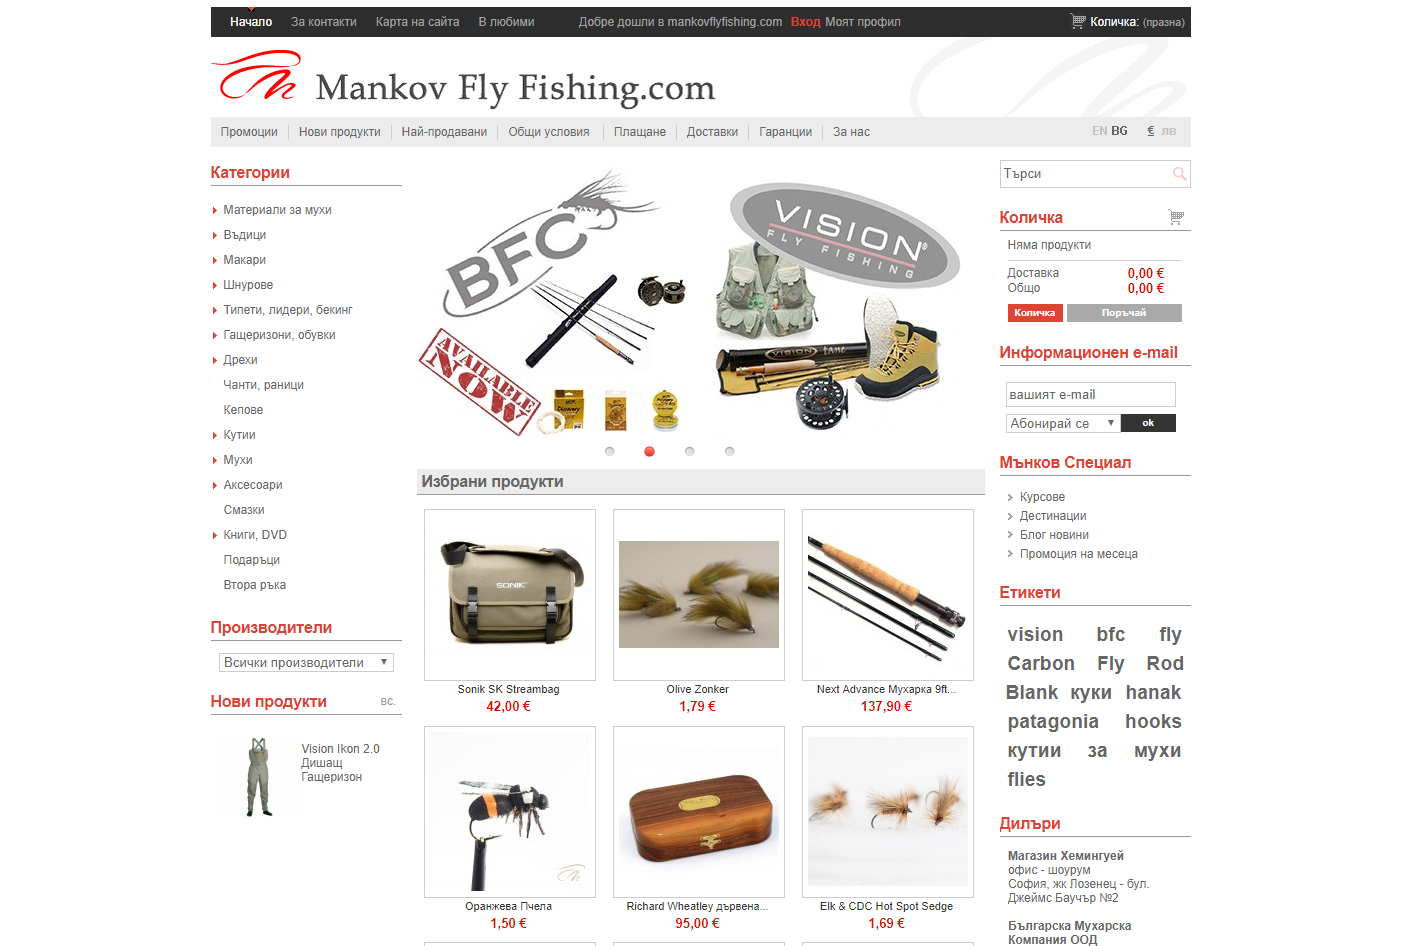 Mankov Fly Fishing